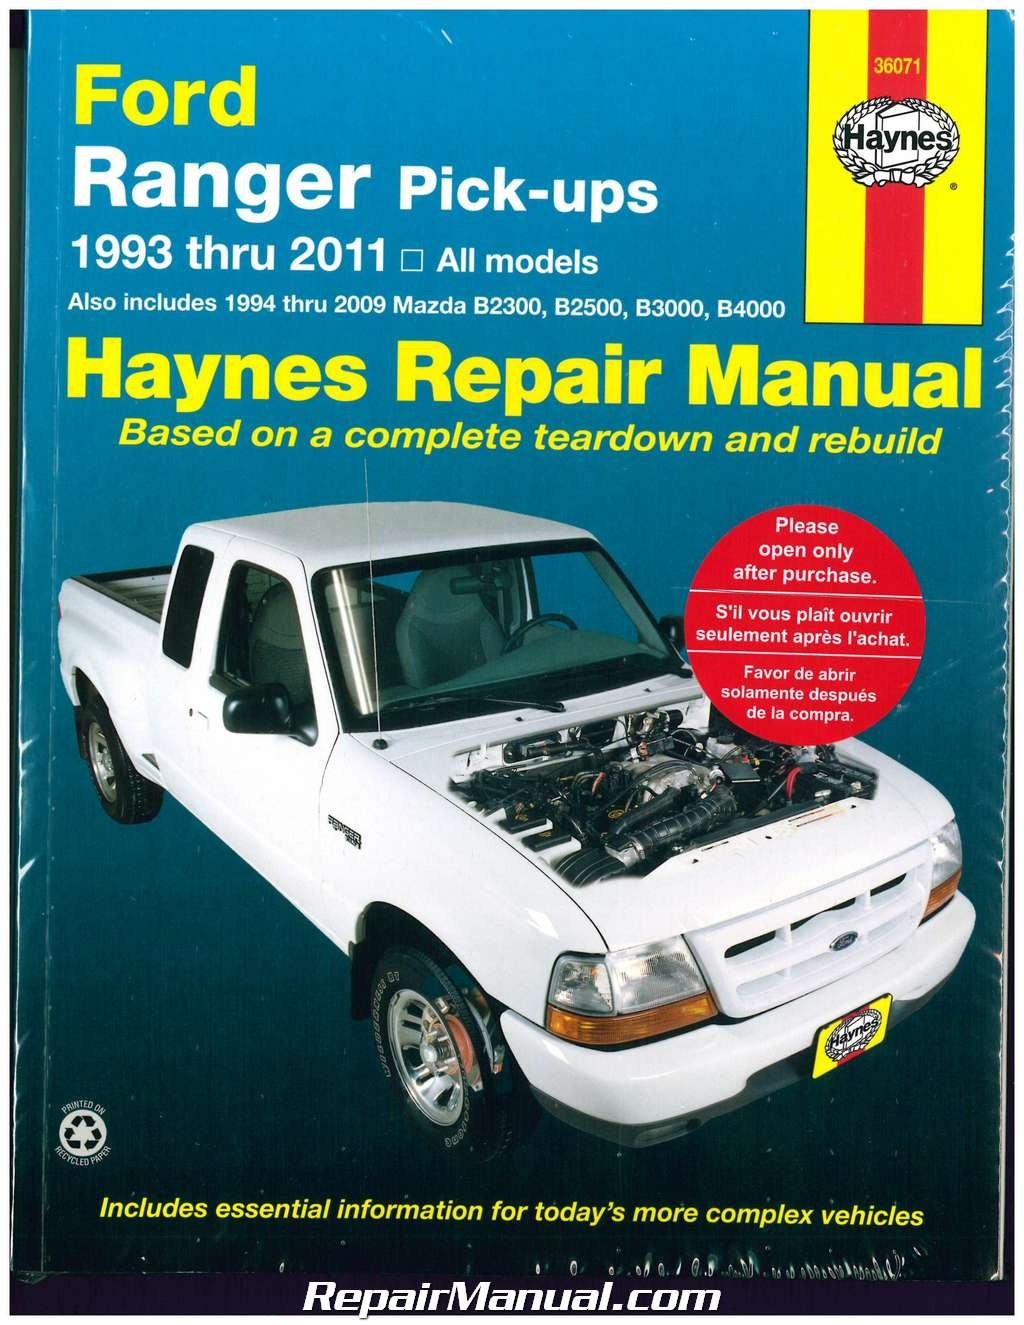 H36071 Haynes Ford Ranger Pickups 1993-2011 Repair Manual: Manufacturer:  Amazon.com: Books